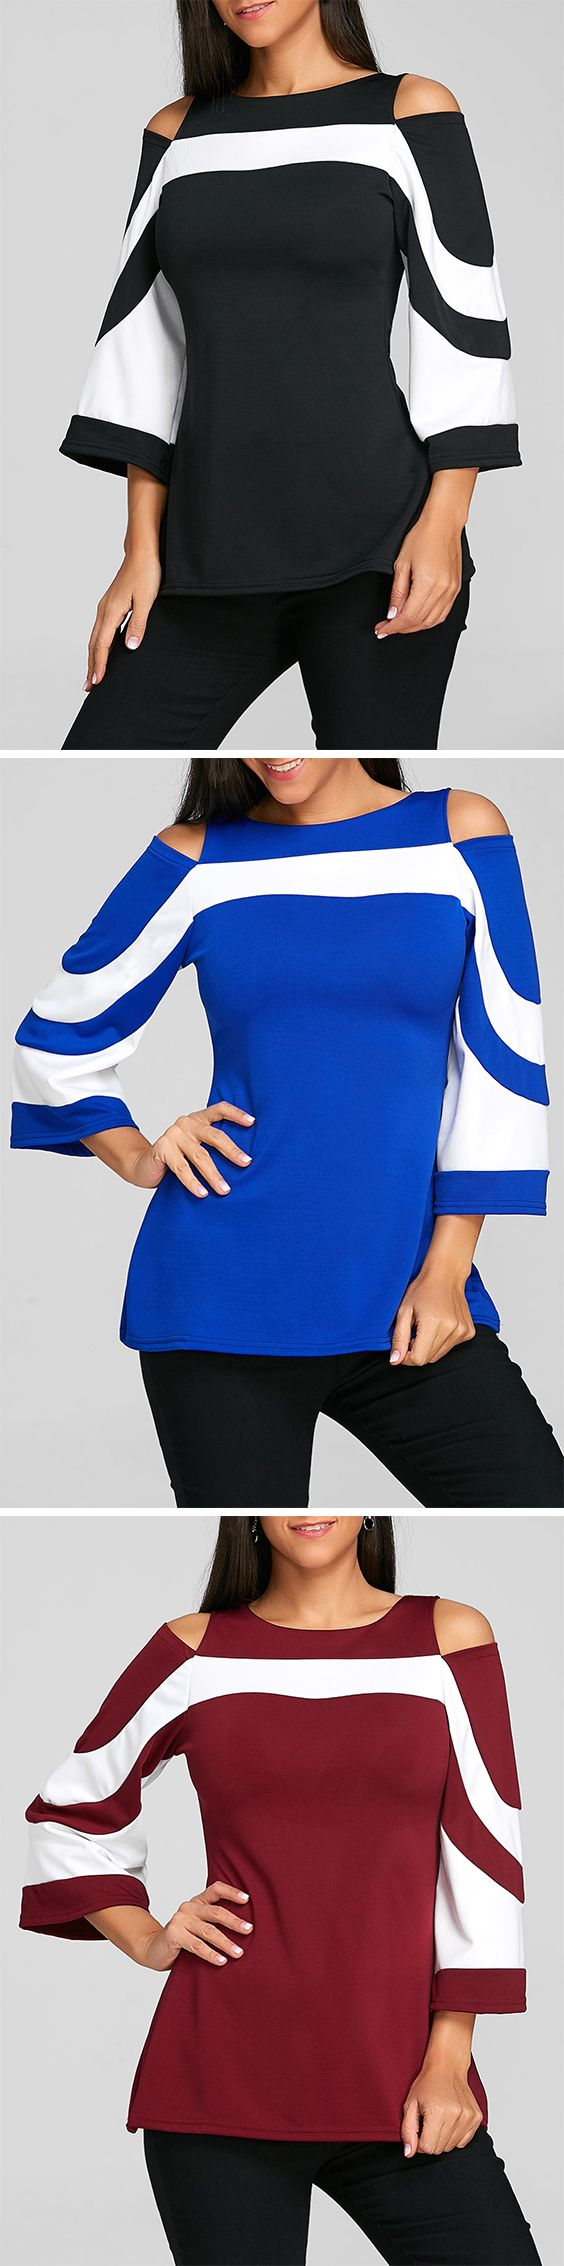 50% OFF Cold Shoulder Blouses,Free Shipping Worldwide.